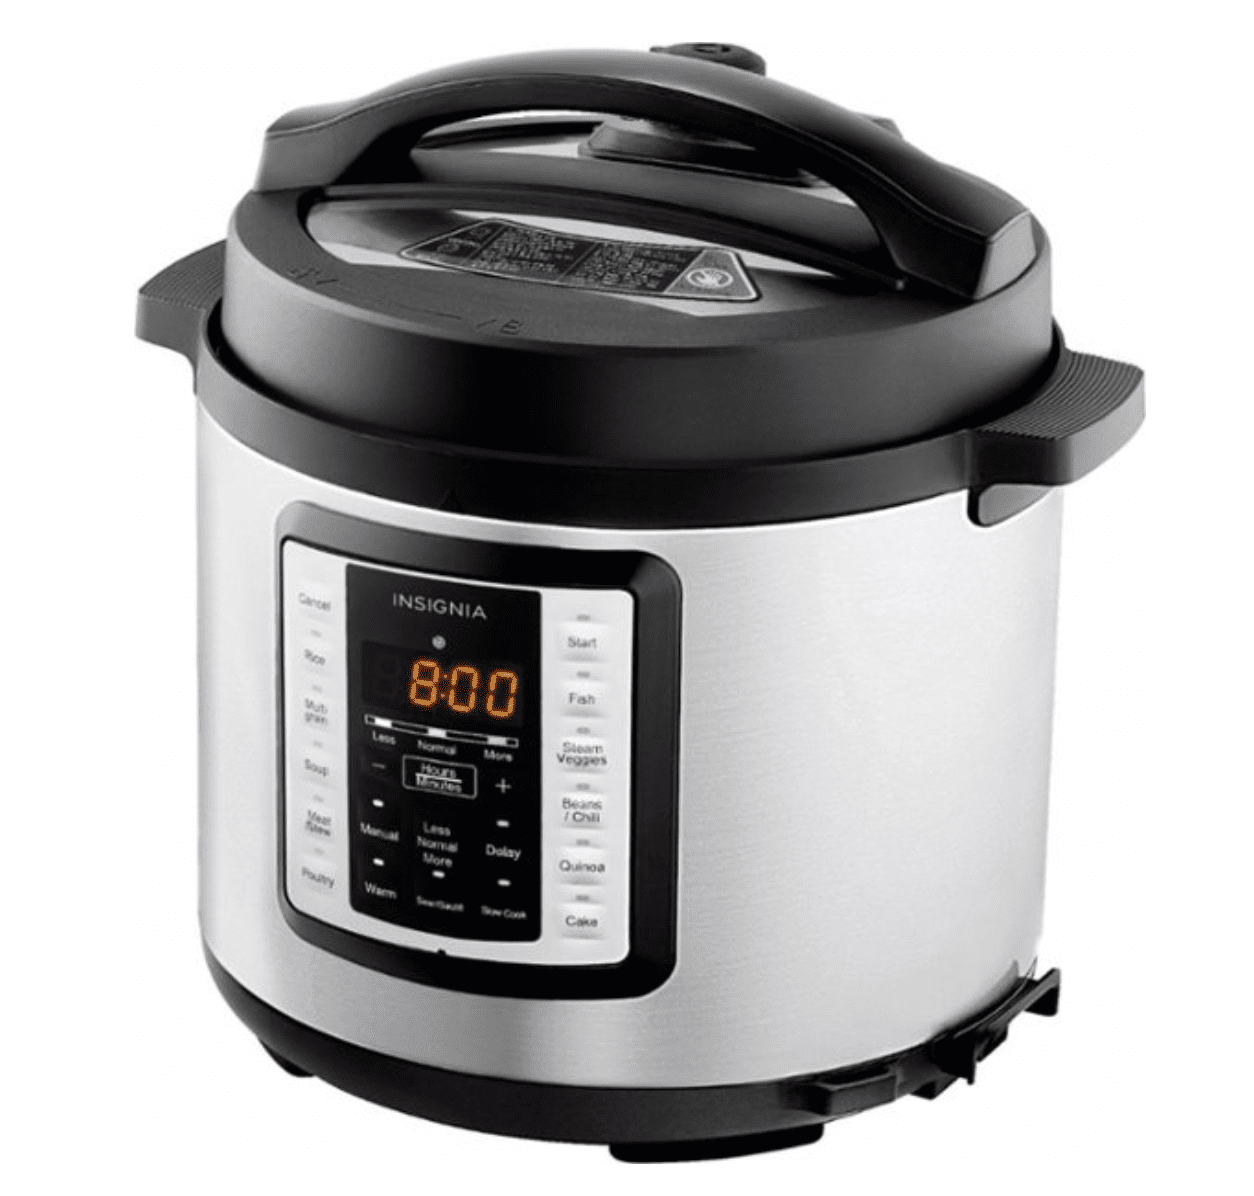 Insignia 6 qt Multi-Function Pressure Cooker for .99